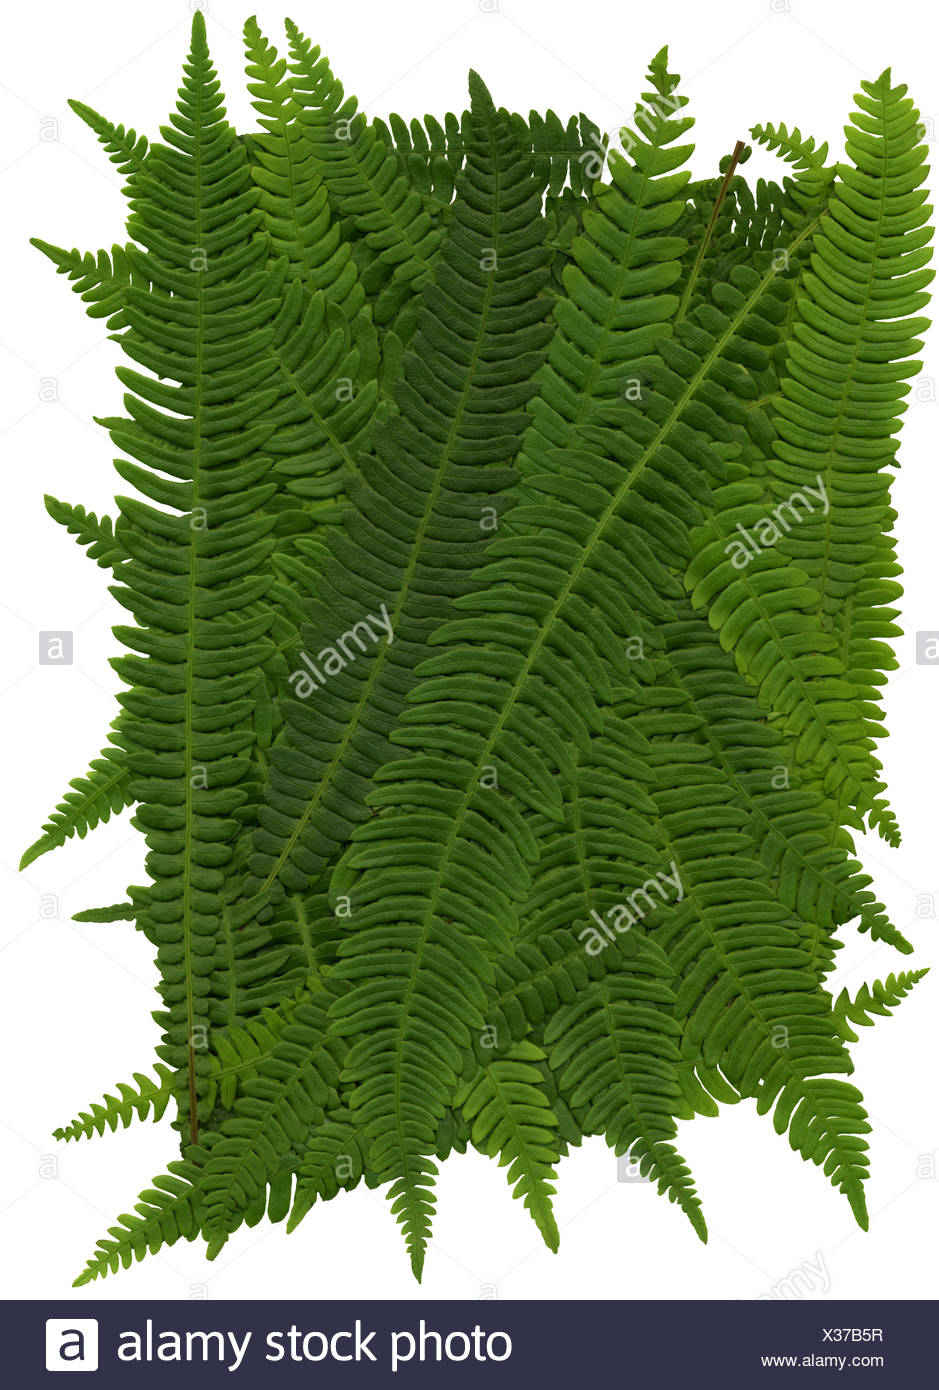 Texture of leaves of hard fern - Stock Image